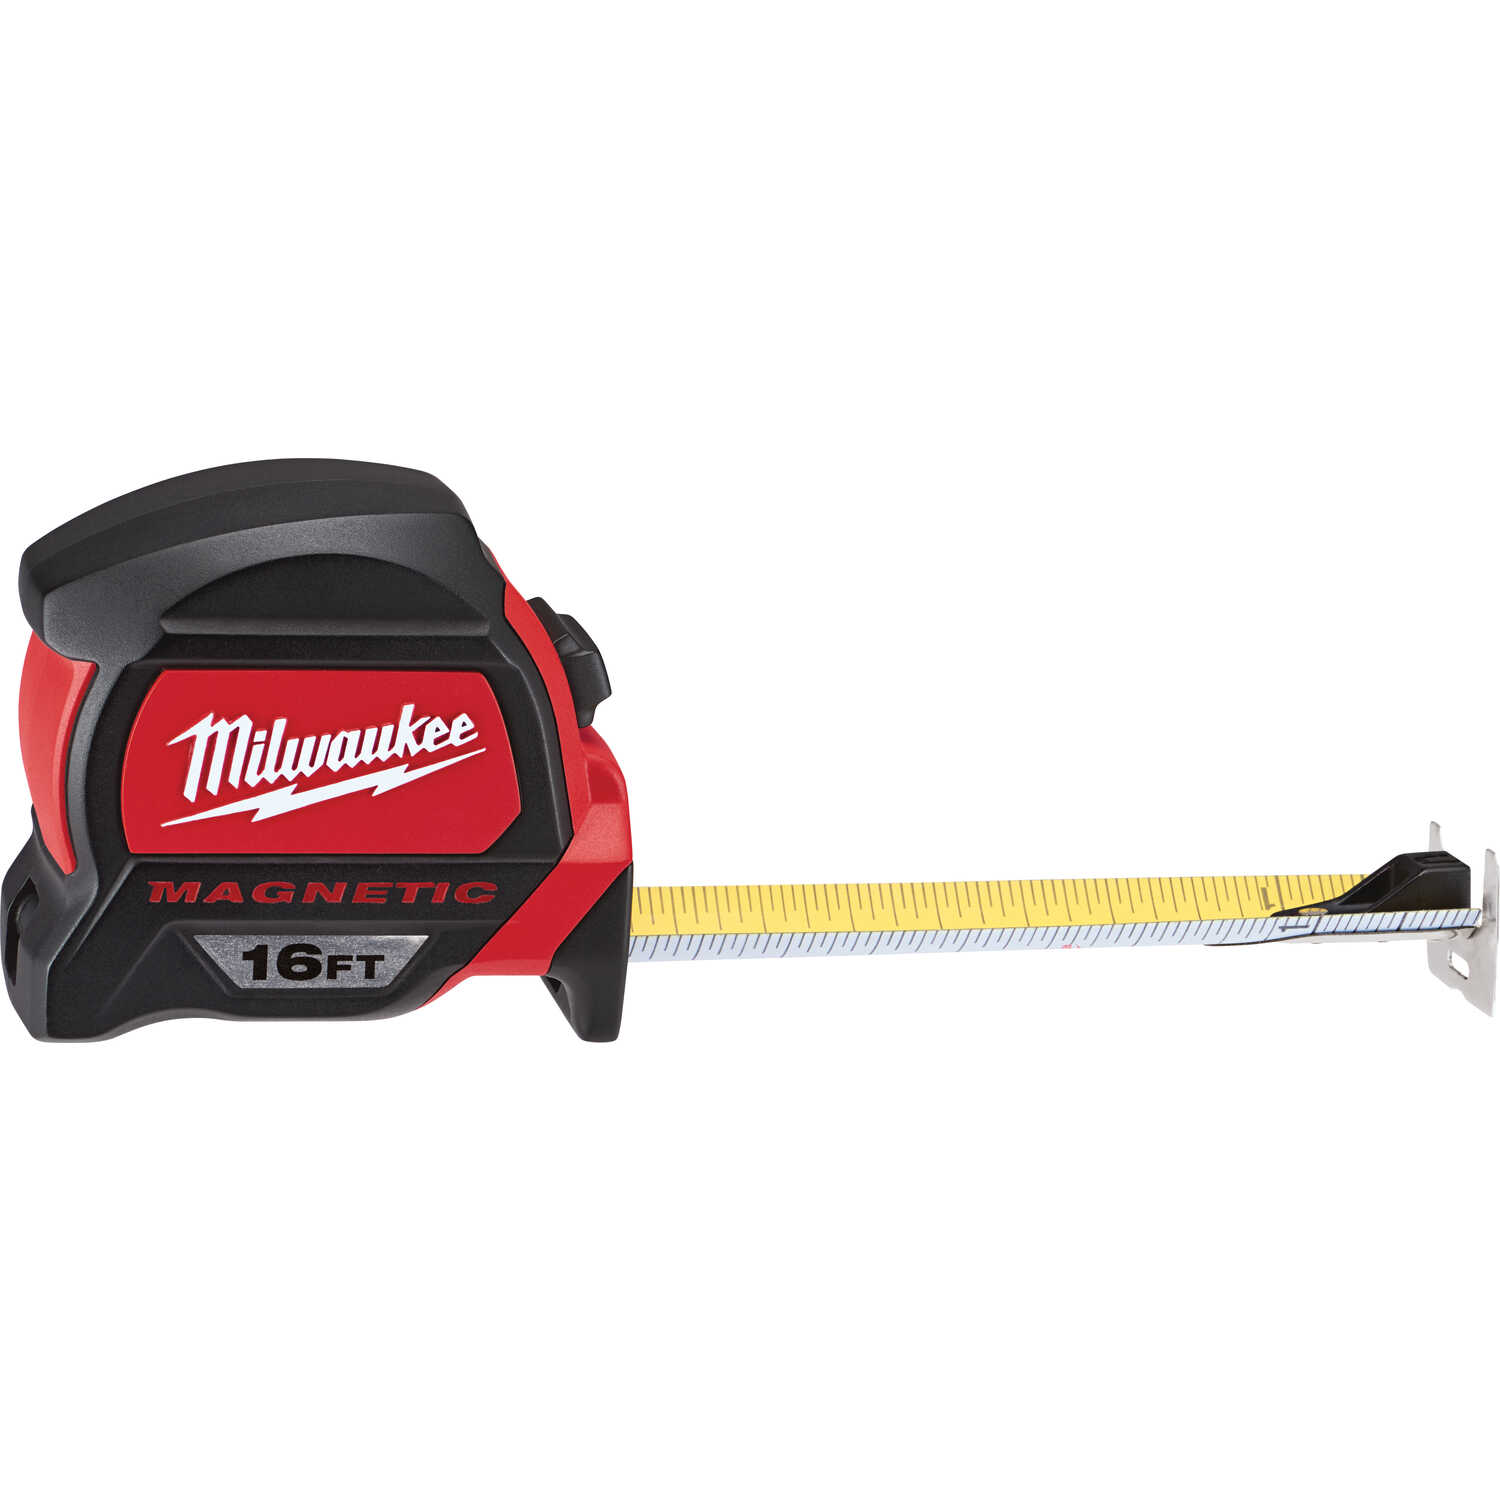 Milwaukee  16 ft. L Red/Black  Magnetic Tape Measure